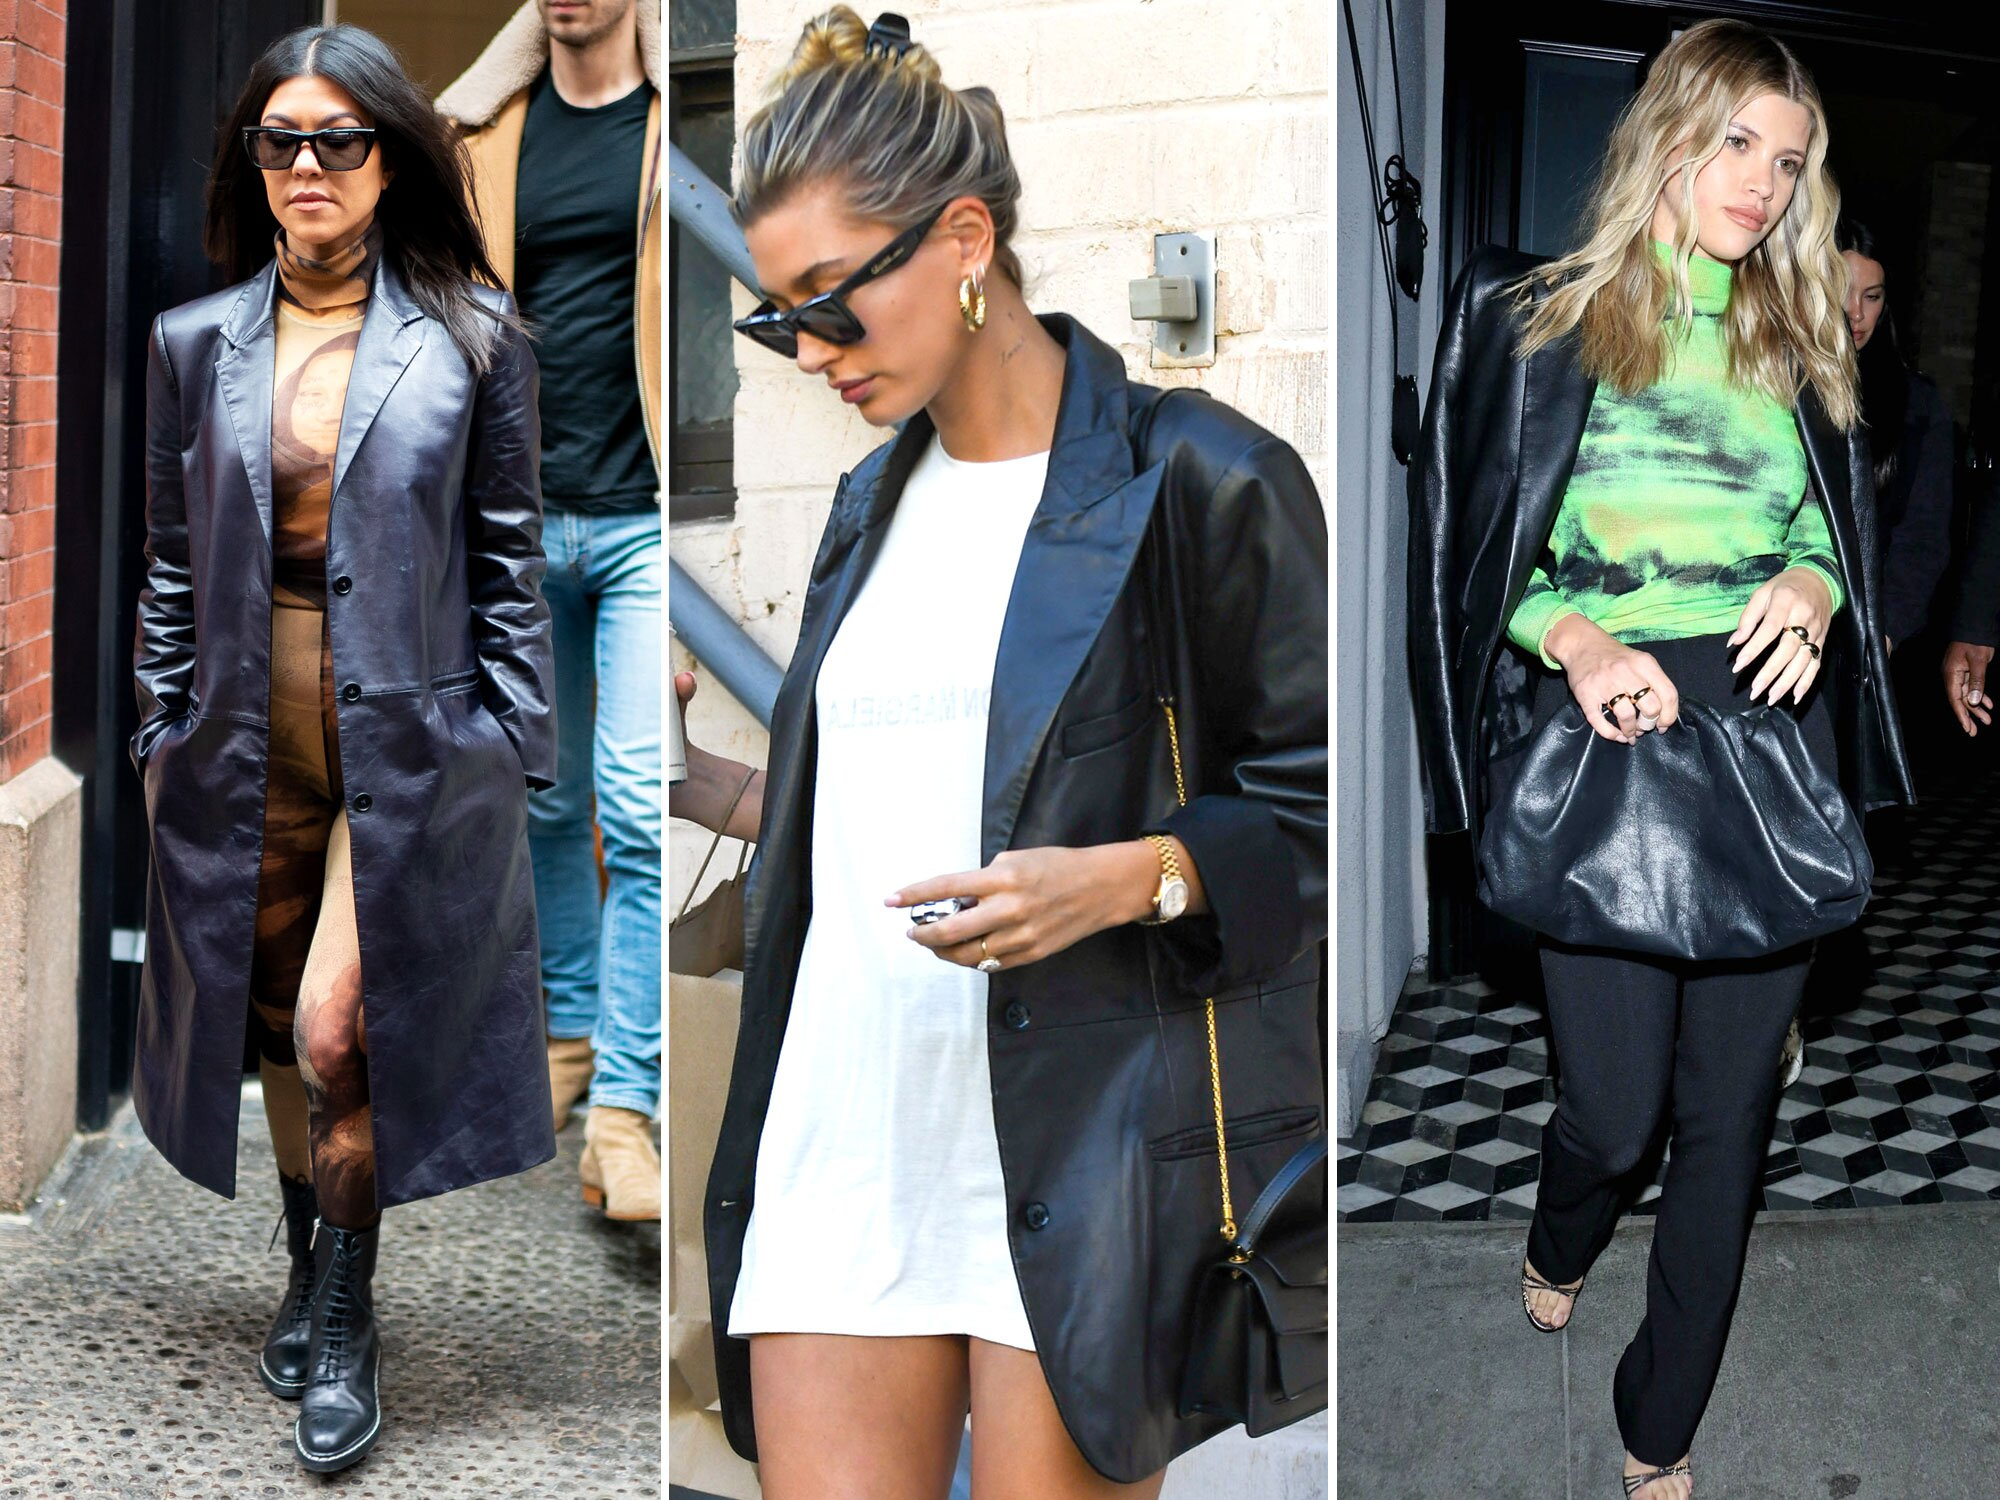 How to dress like celebrity in limited budget